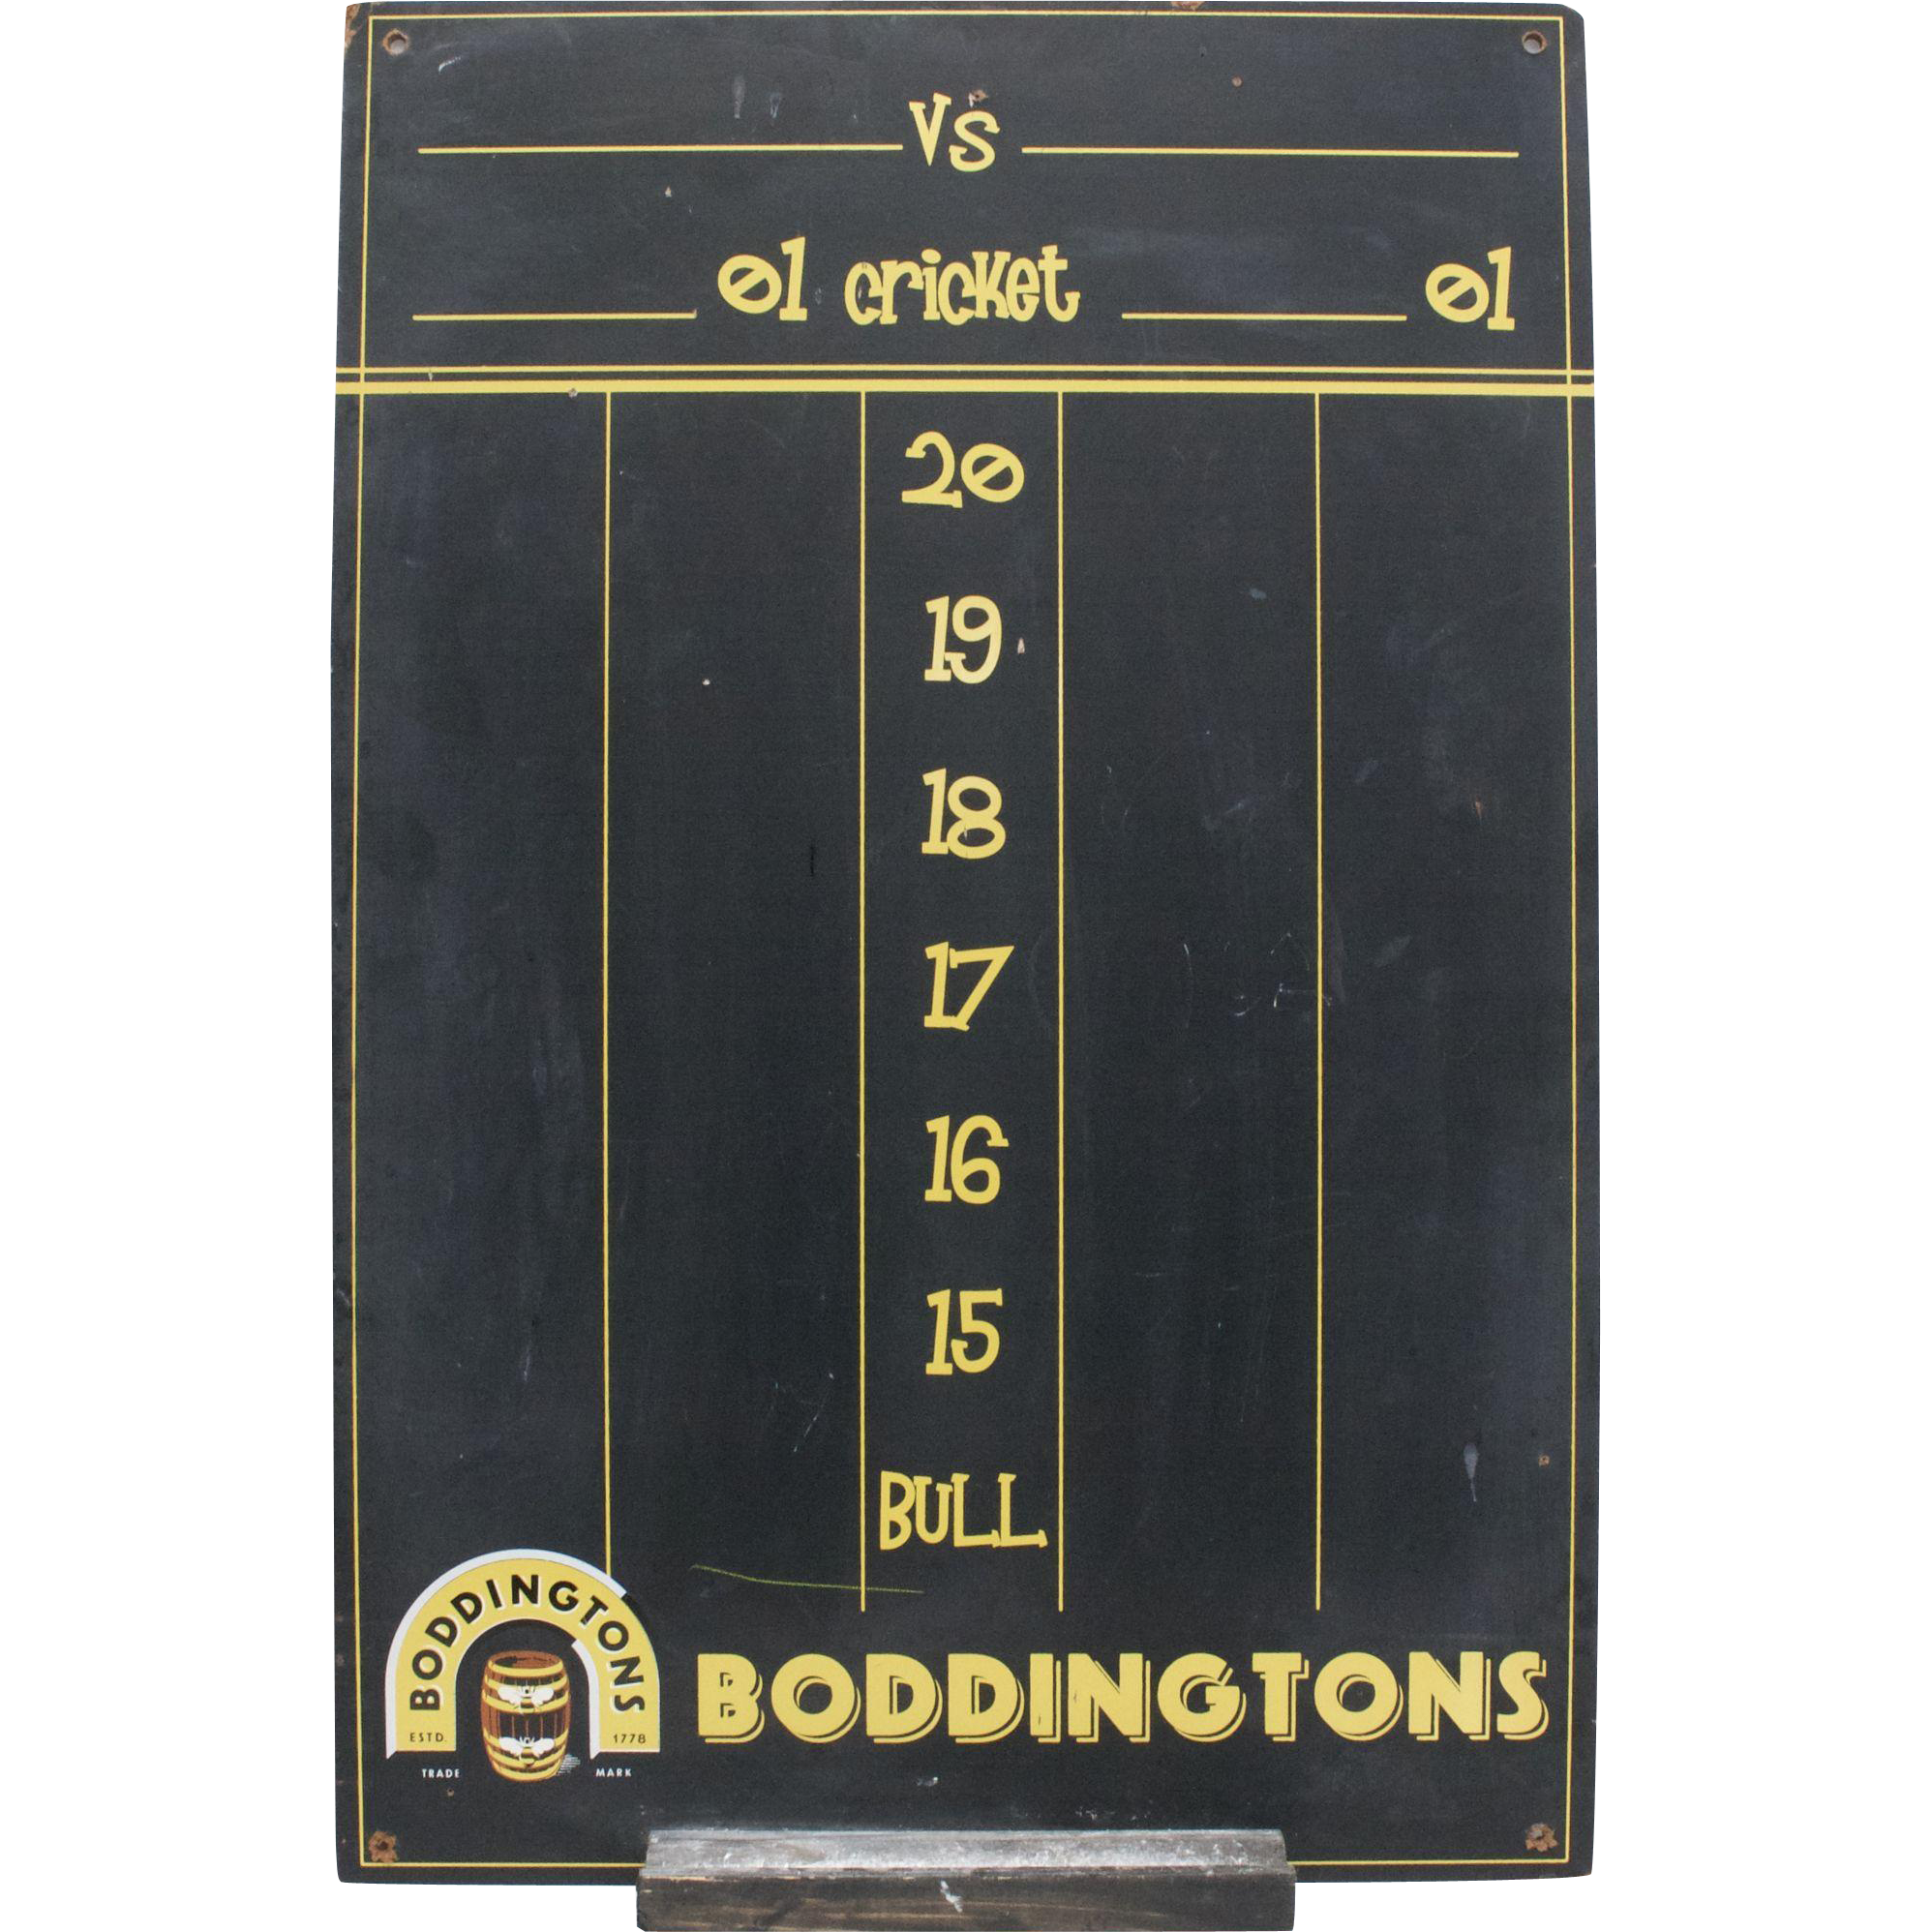 Boddington's Beer Ale Advertising Black Chalkboard Wall Decor